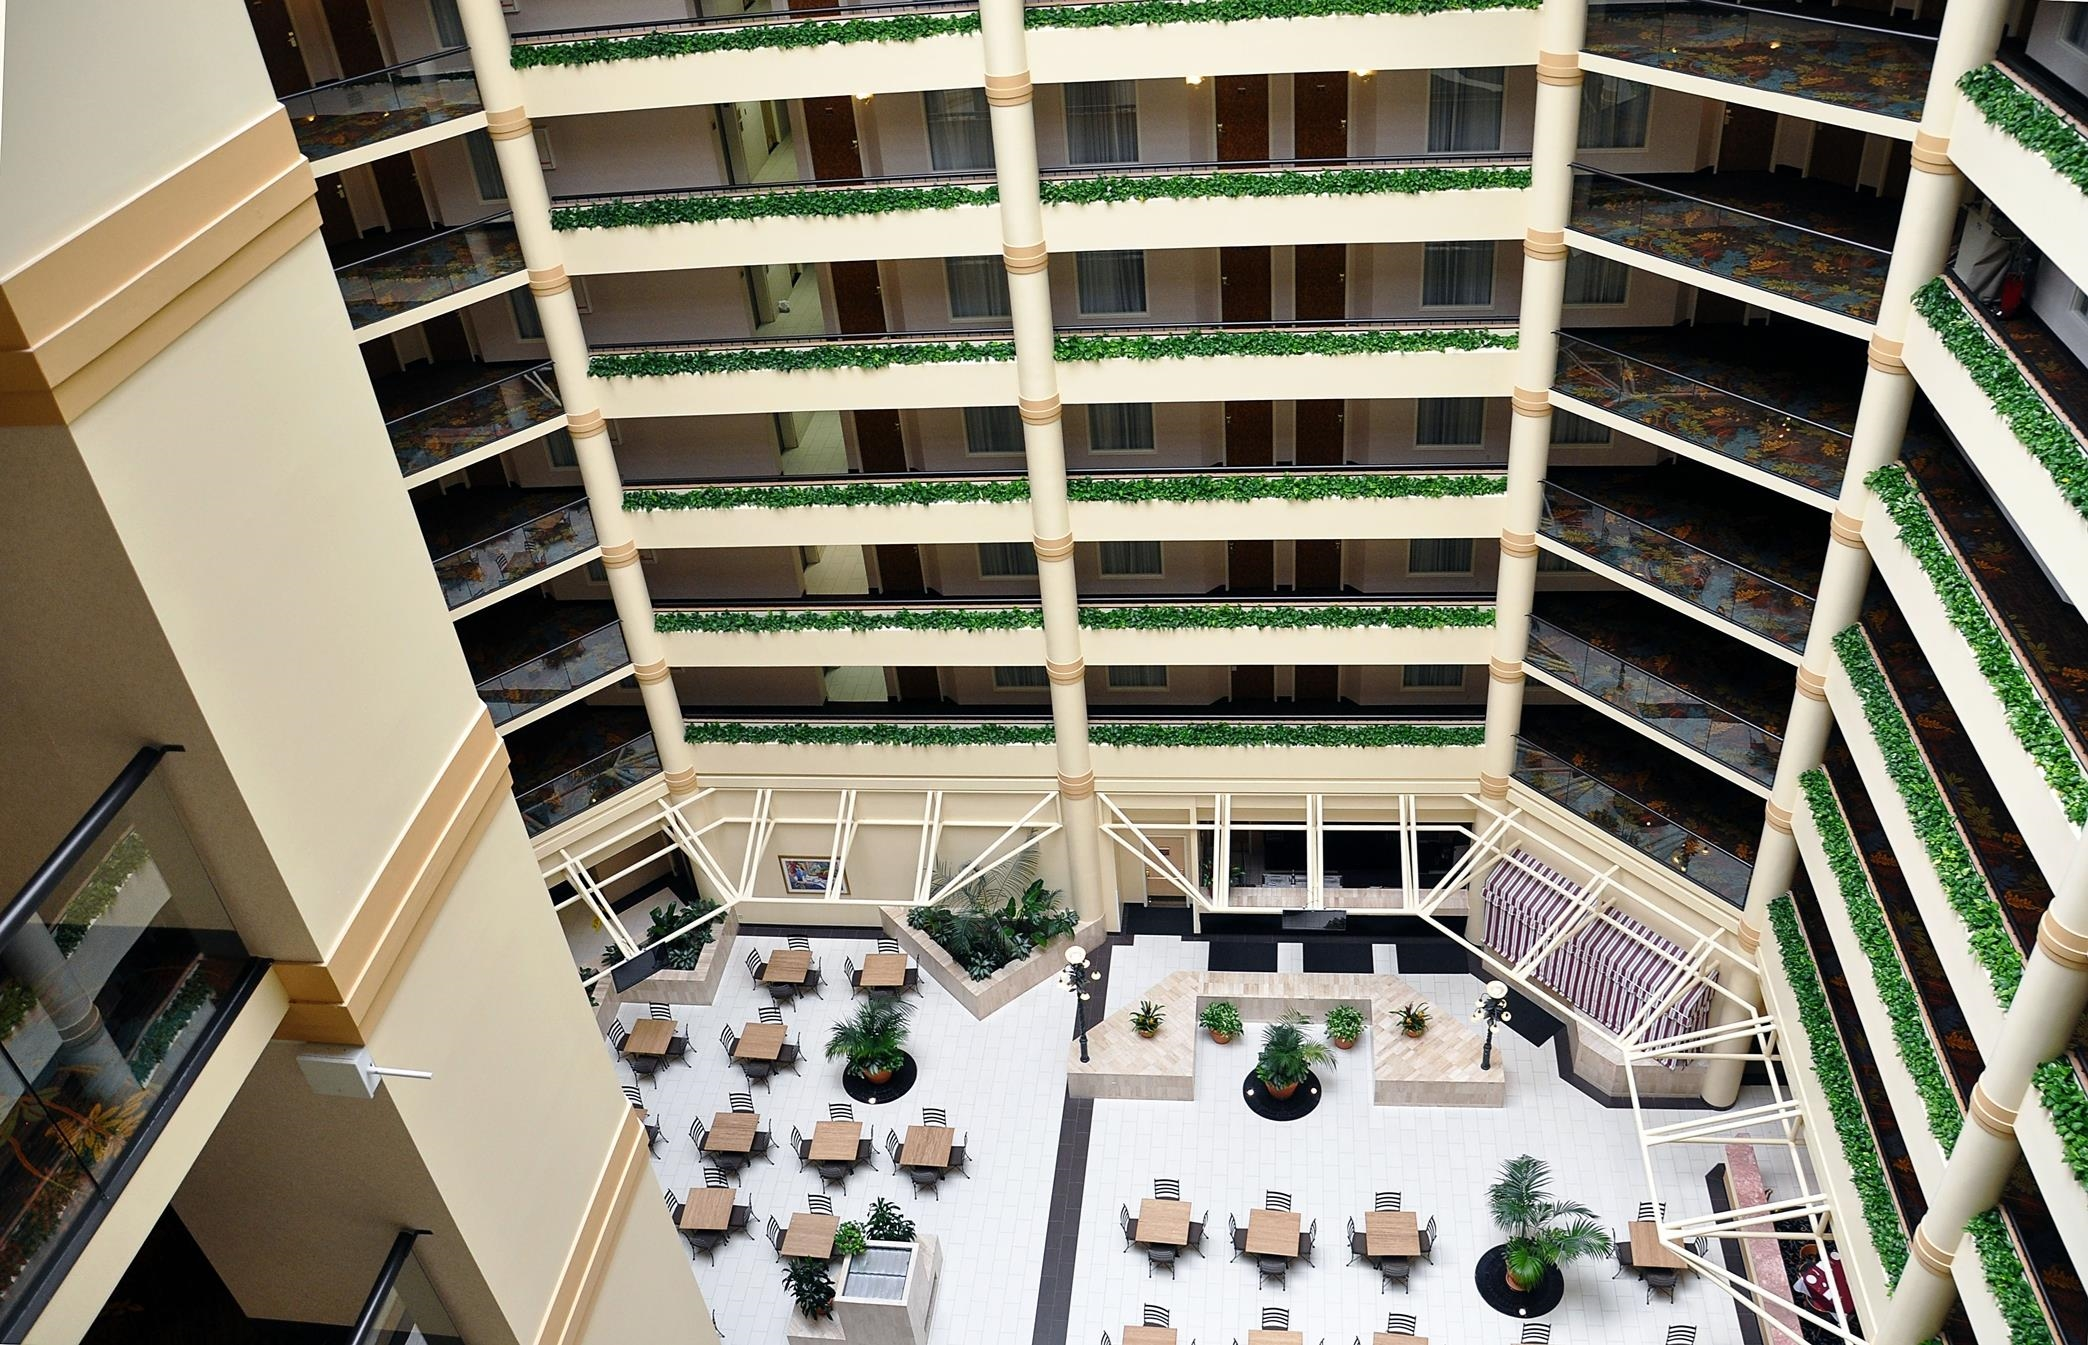 Doubletree Suites By Hilton Hotel Salt Lake City Downtown Salt Lake City Utah Ut